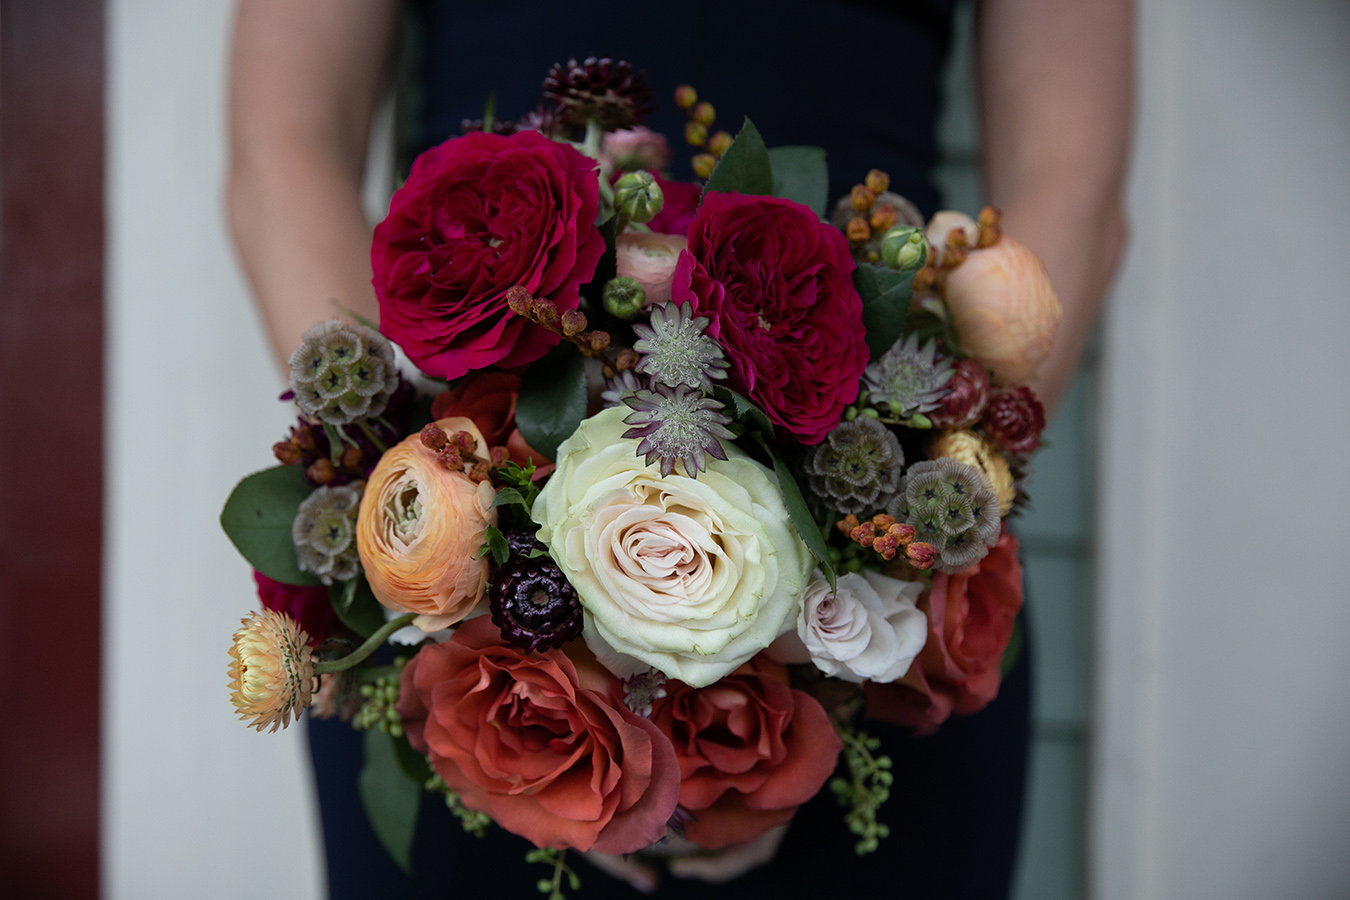 Florist Meade Wenzel used beautiful fall colors in the wedding bouquets.